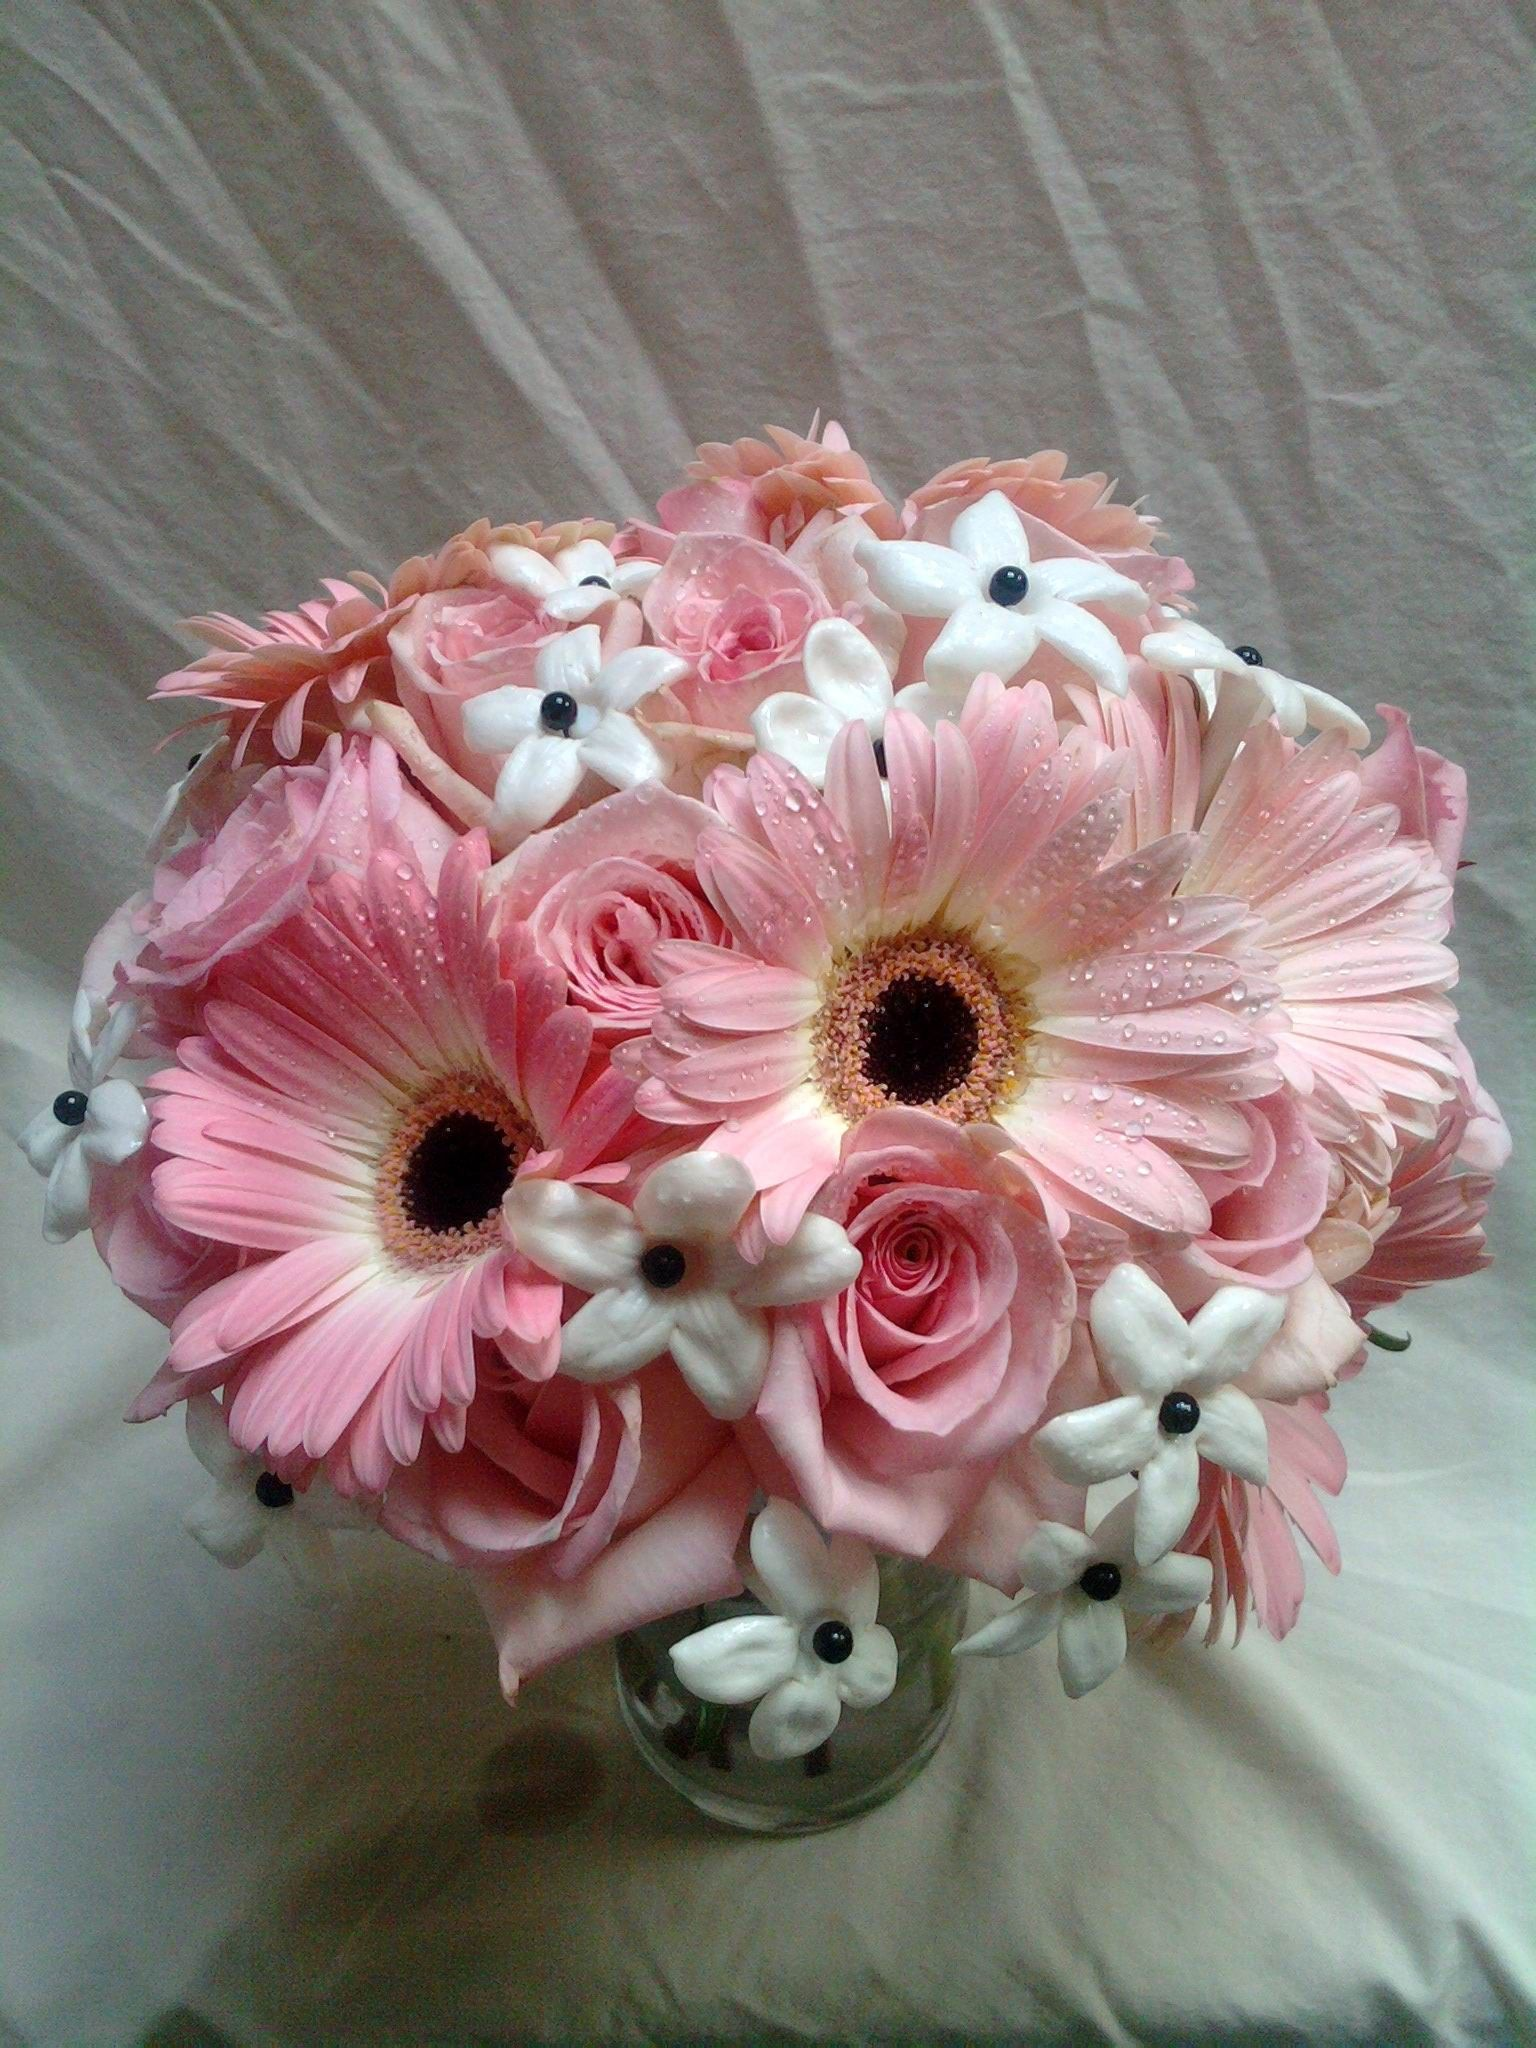 Flower pink bouquets country daisys hot pink gerbera daisy flower flower pink bouquets country daisys hot pink gerbera daisy flower wholesale flowers wedding flowers izmirmasajfo